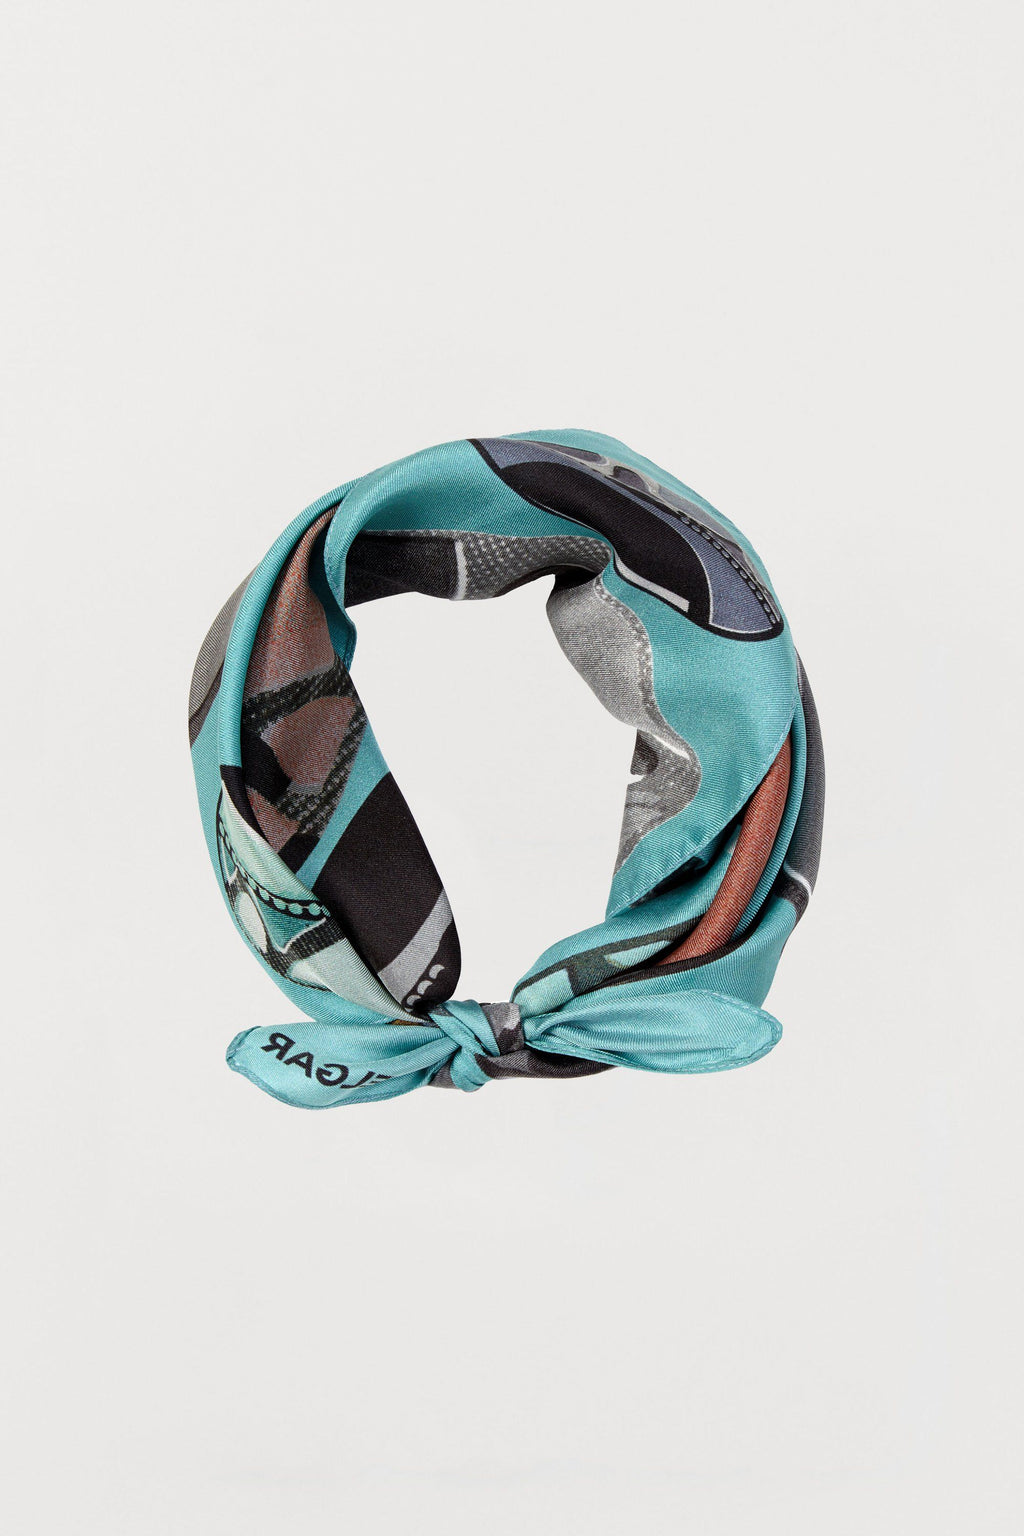 Light Blue Beads Silk Scarf - Small - Bianca Elgar